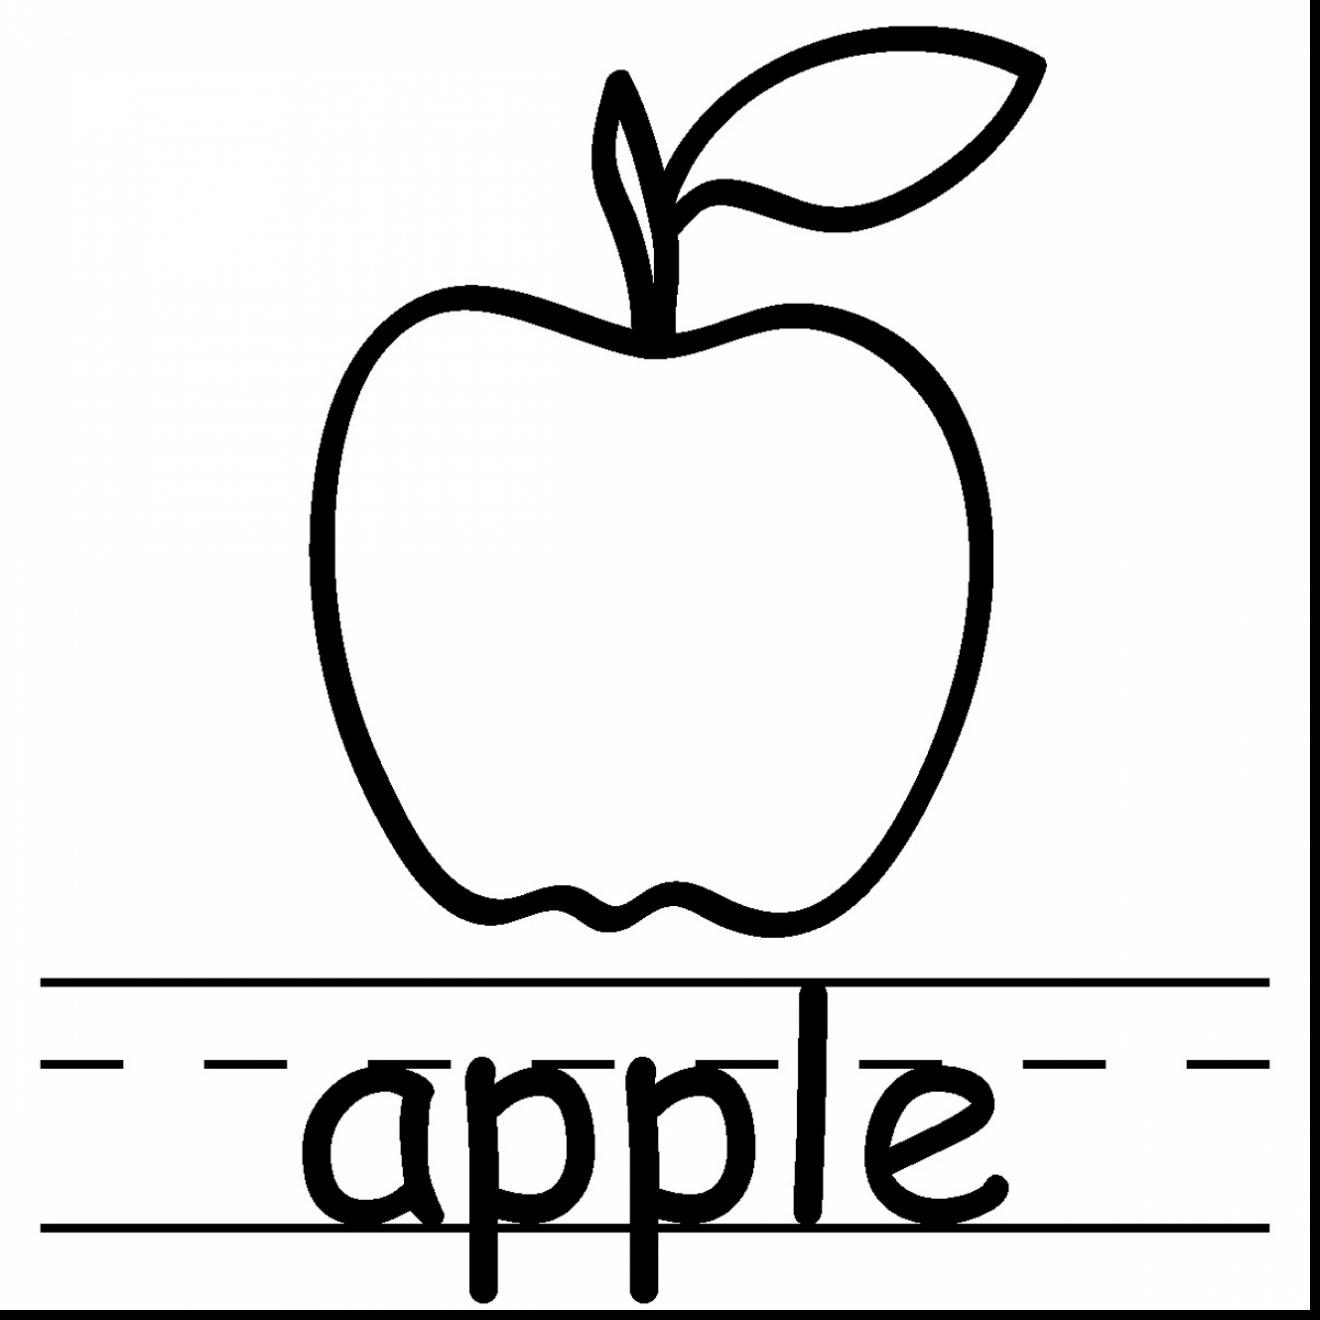 1320x1320 Magnificent Apple Core Coloring Page With Apple Coloring Pages